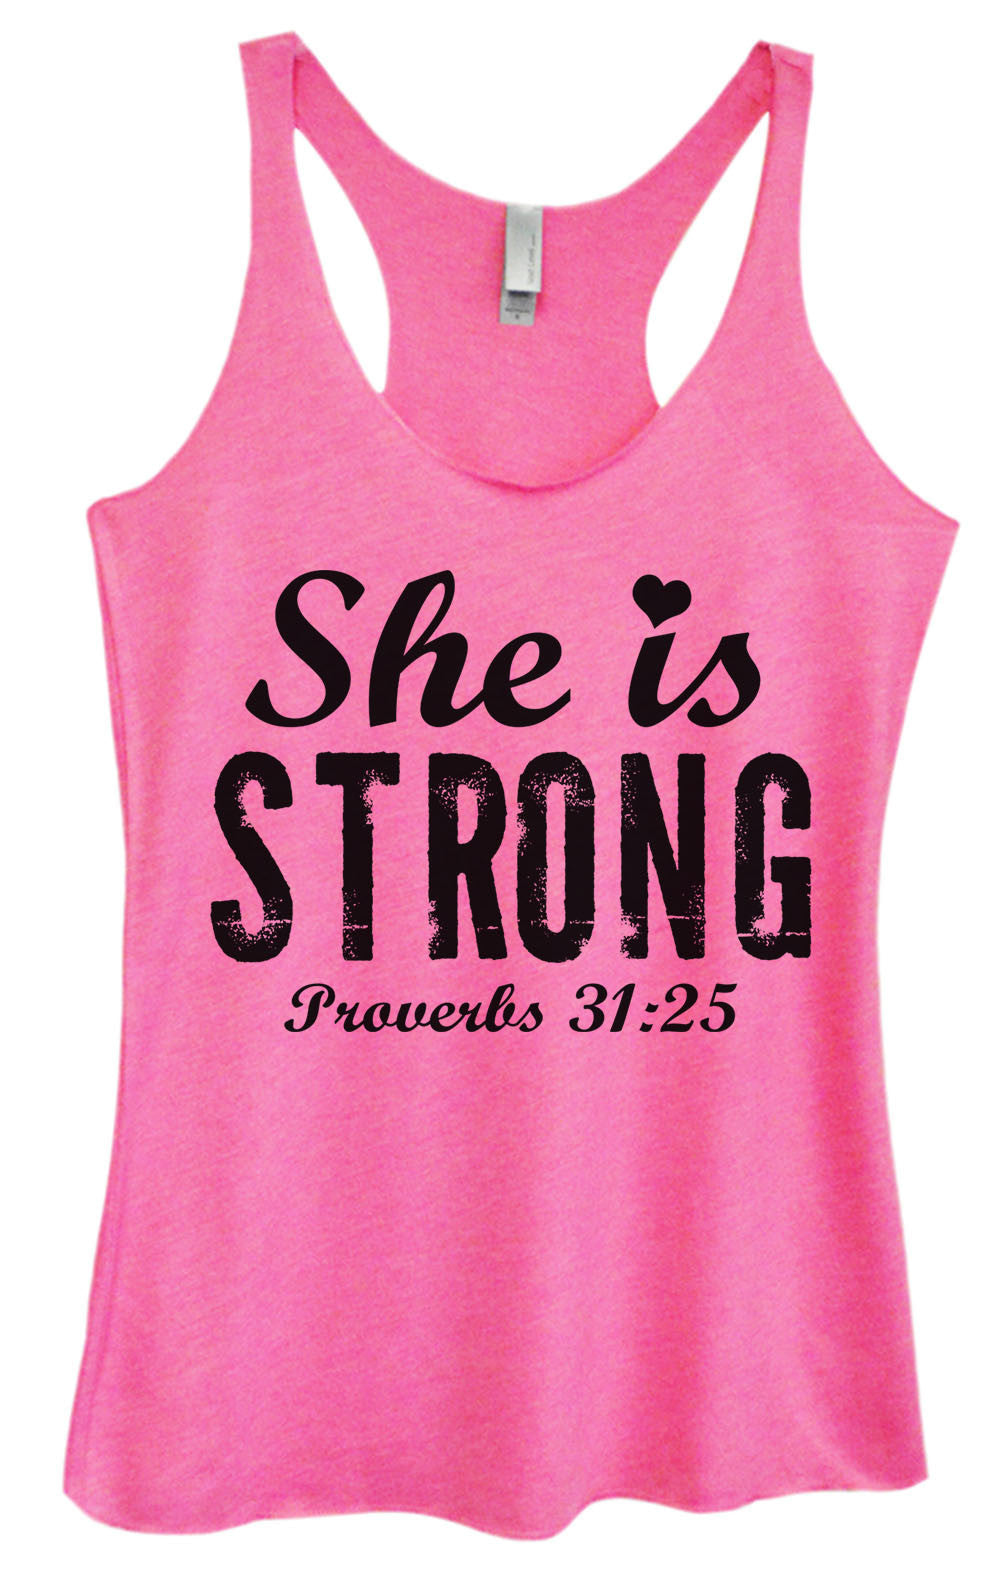 Womens Fashion Triblend Tank Top - She Is Strong Proverbs 31:25 - Tri-939 - Funny Shirts Tank Tops Burnouts and Triblends  - 4